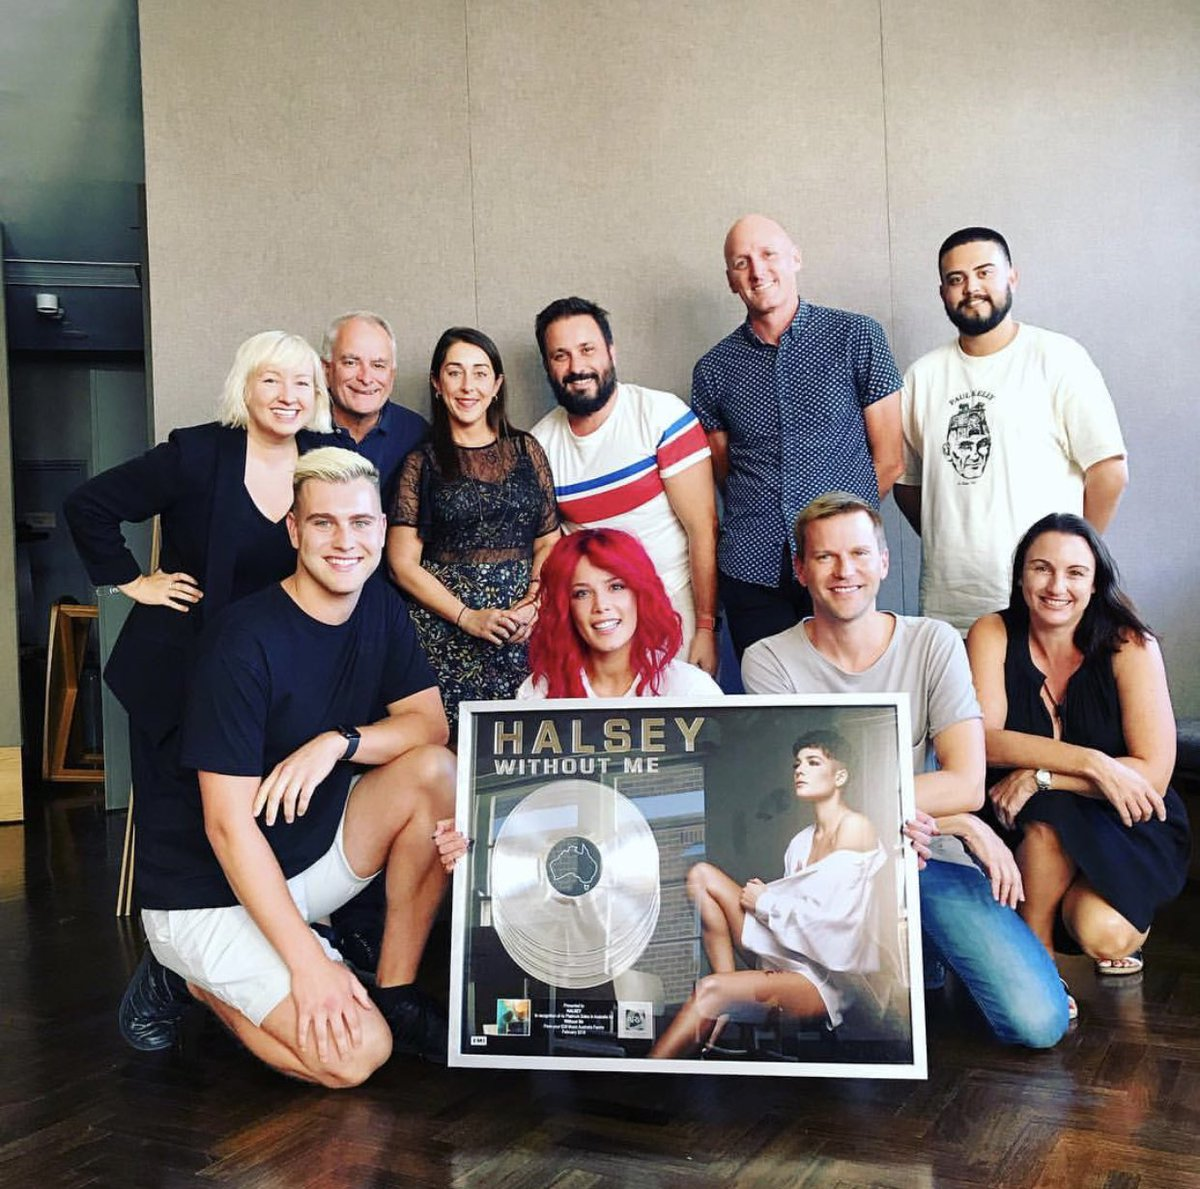 Today we got to present @halsey with a 4x Platinum plaque for #WithoutMe, congratulations!